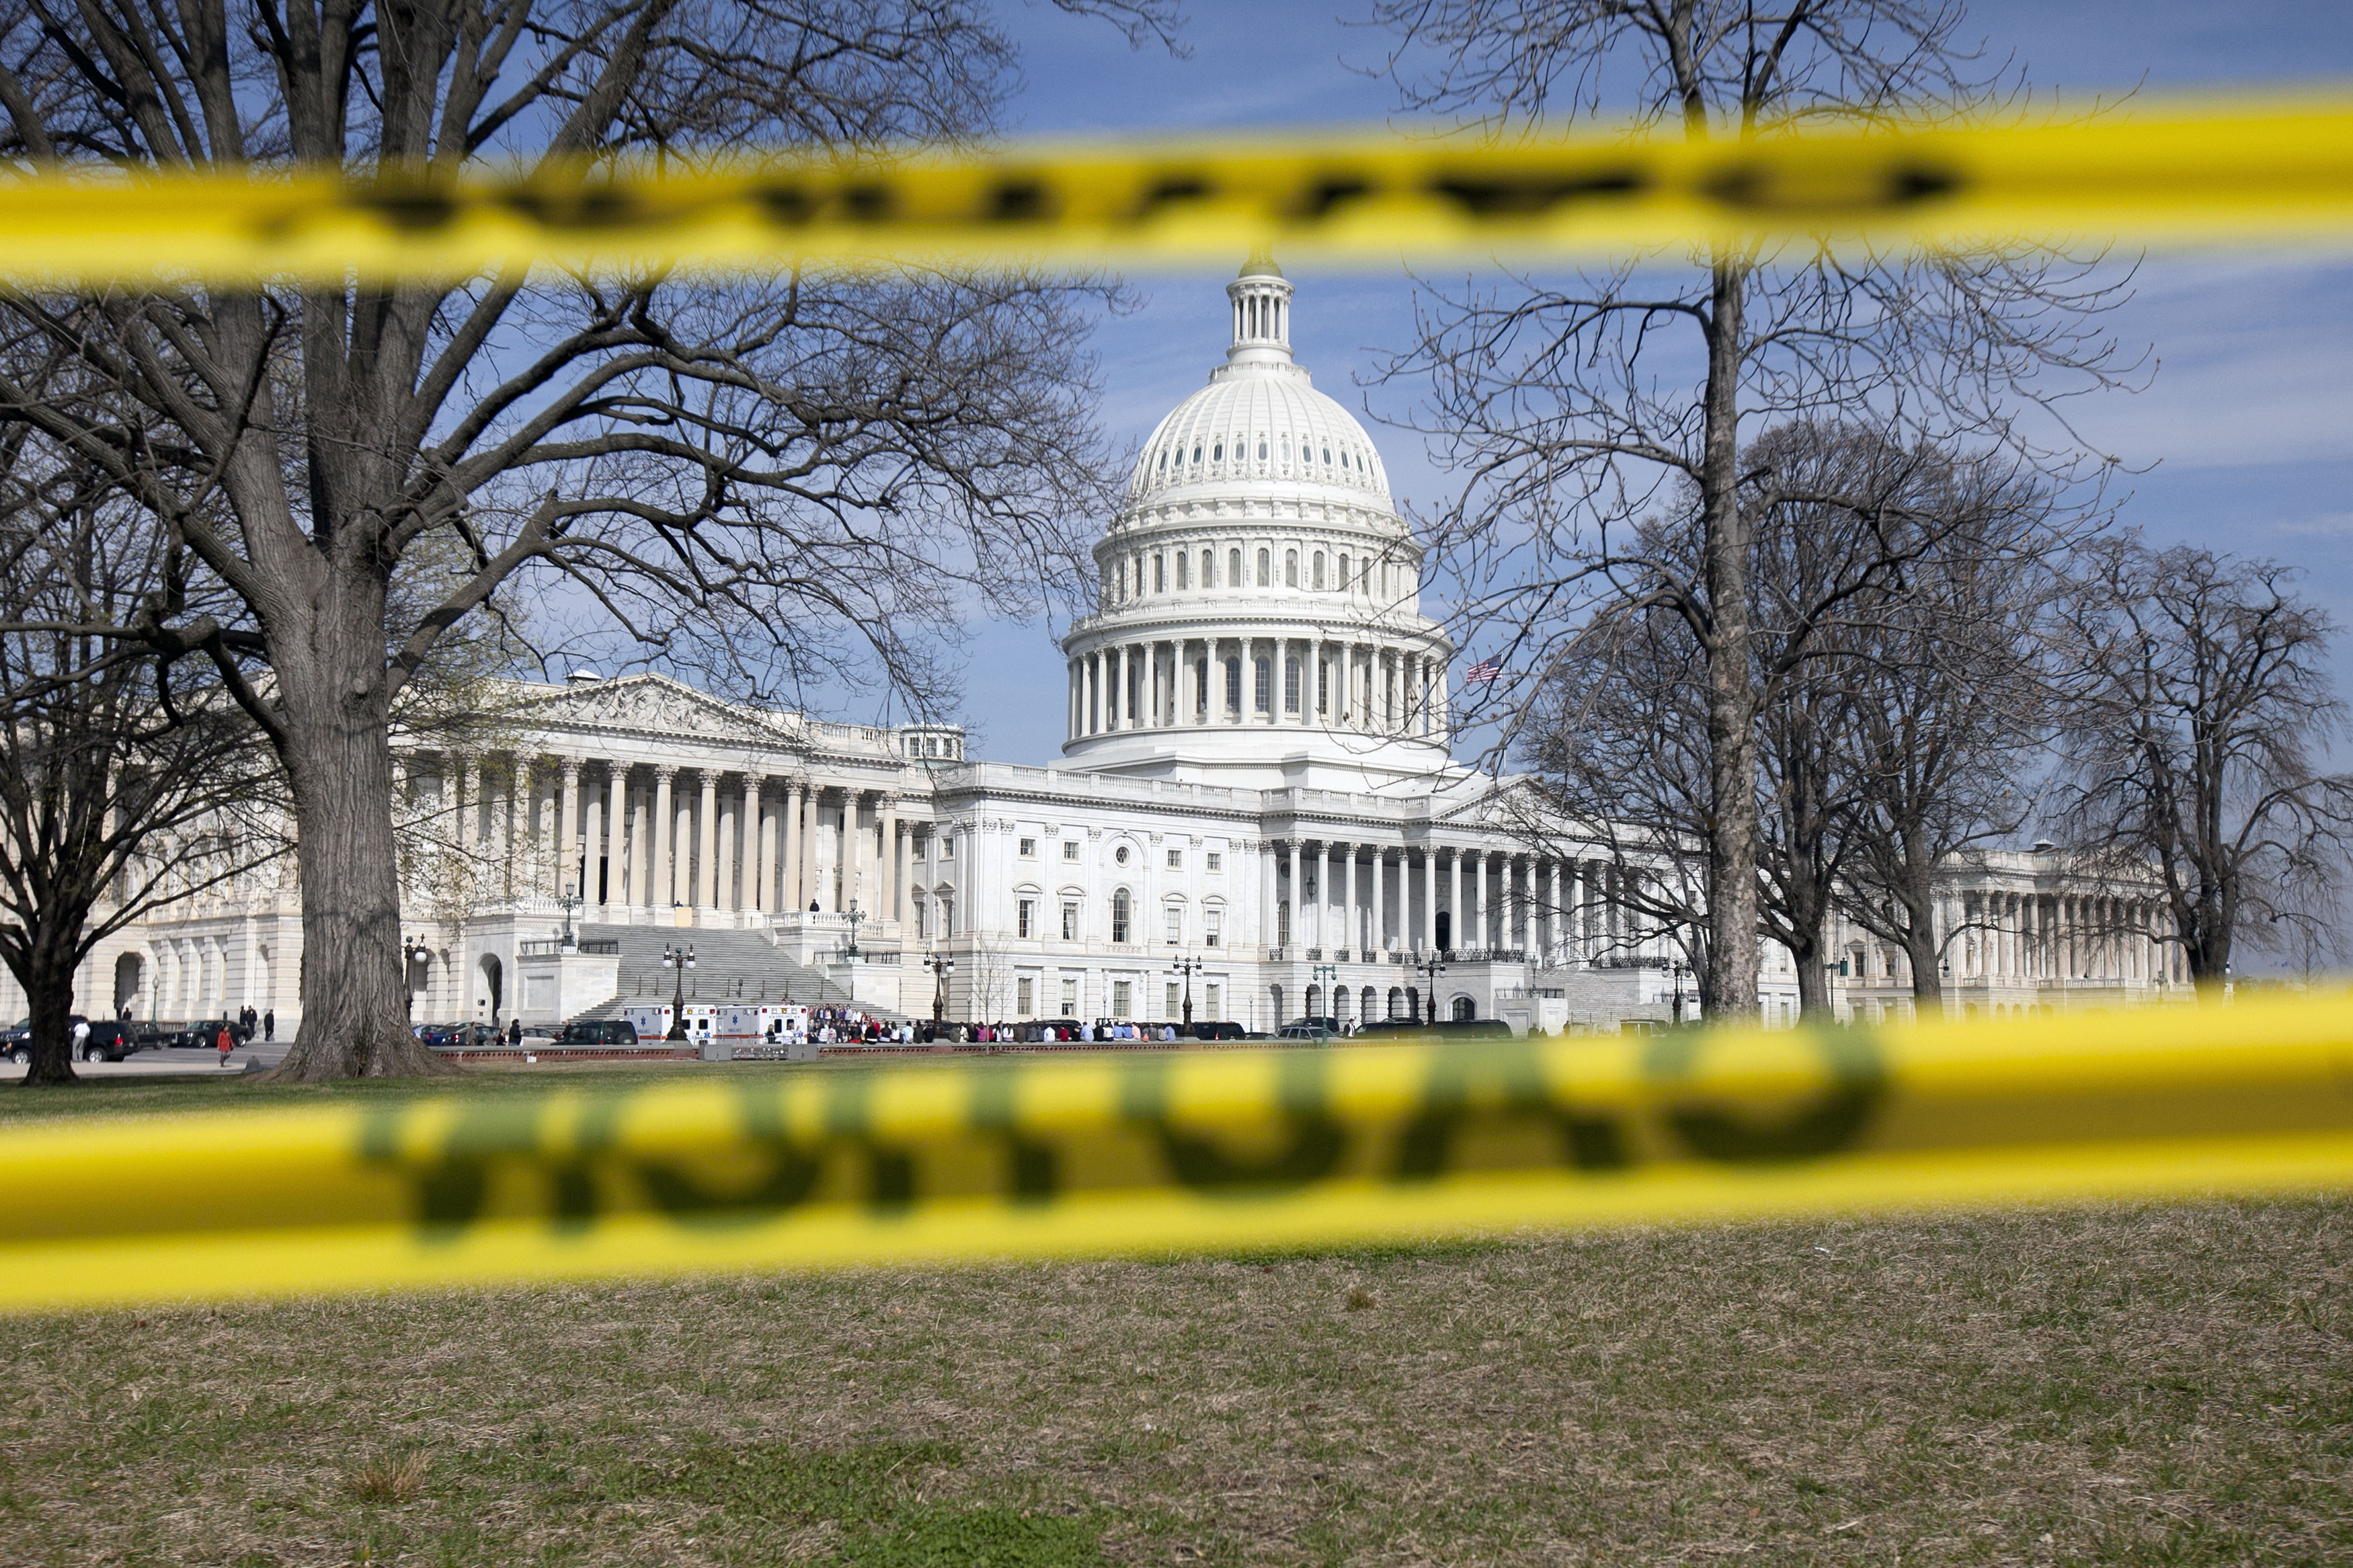 The Capitol building stands behind caution tape